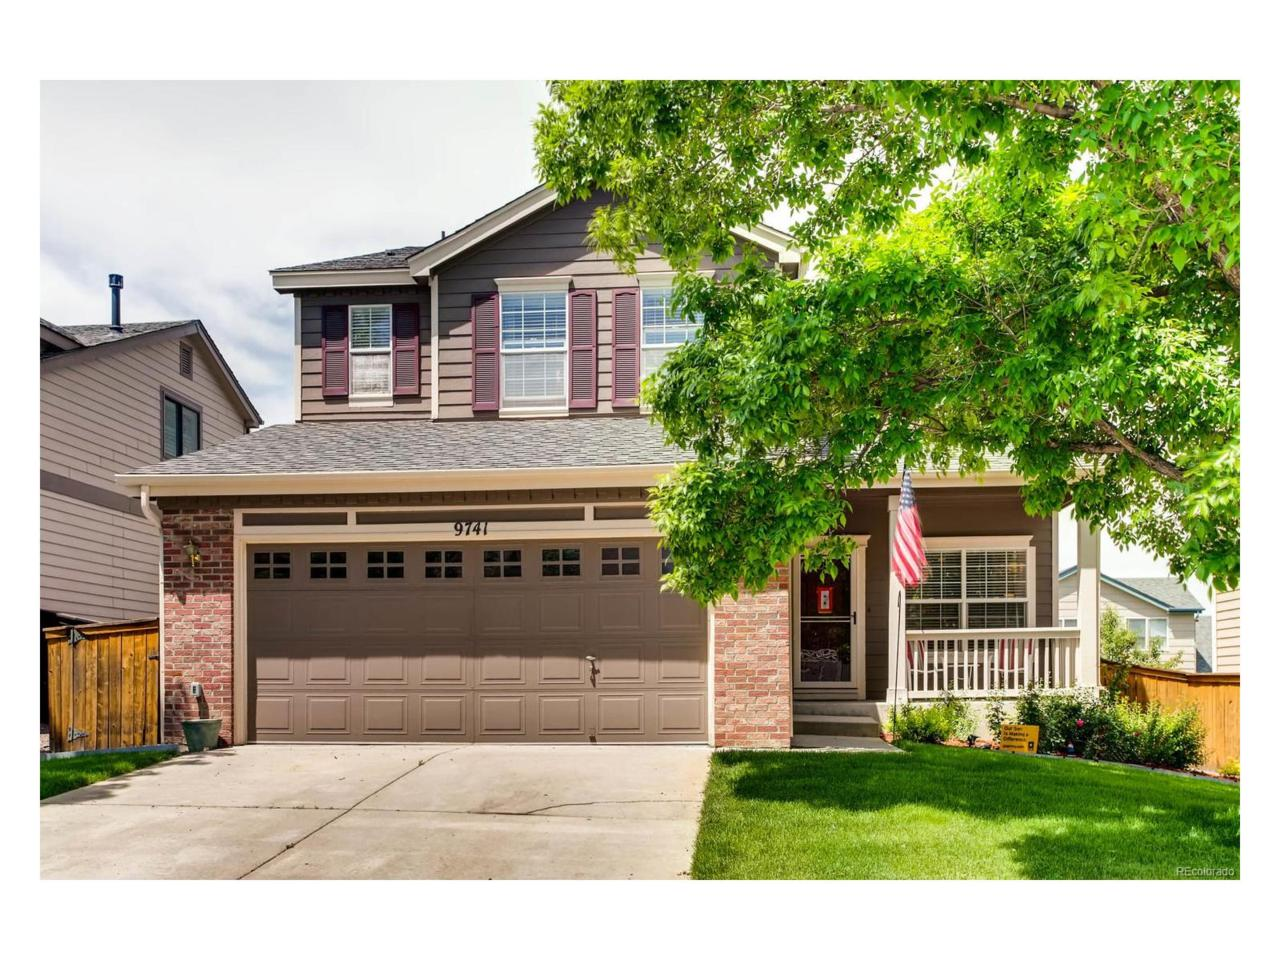 9741 Mulberry Street, Highlands Ranch, CO 80129 (MLS #4869845) :: 8z Real Estate